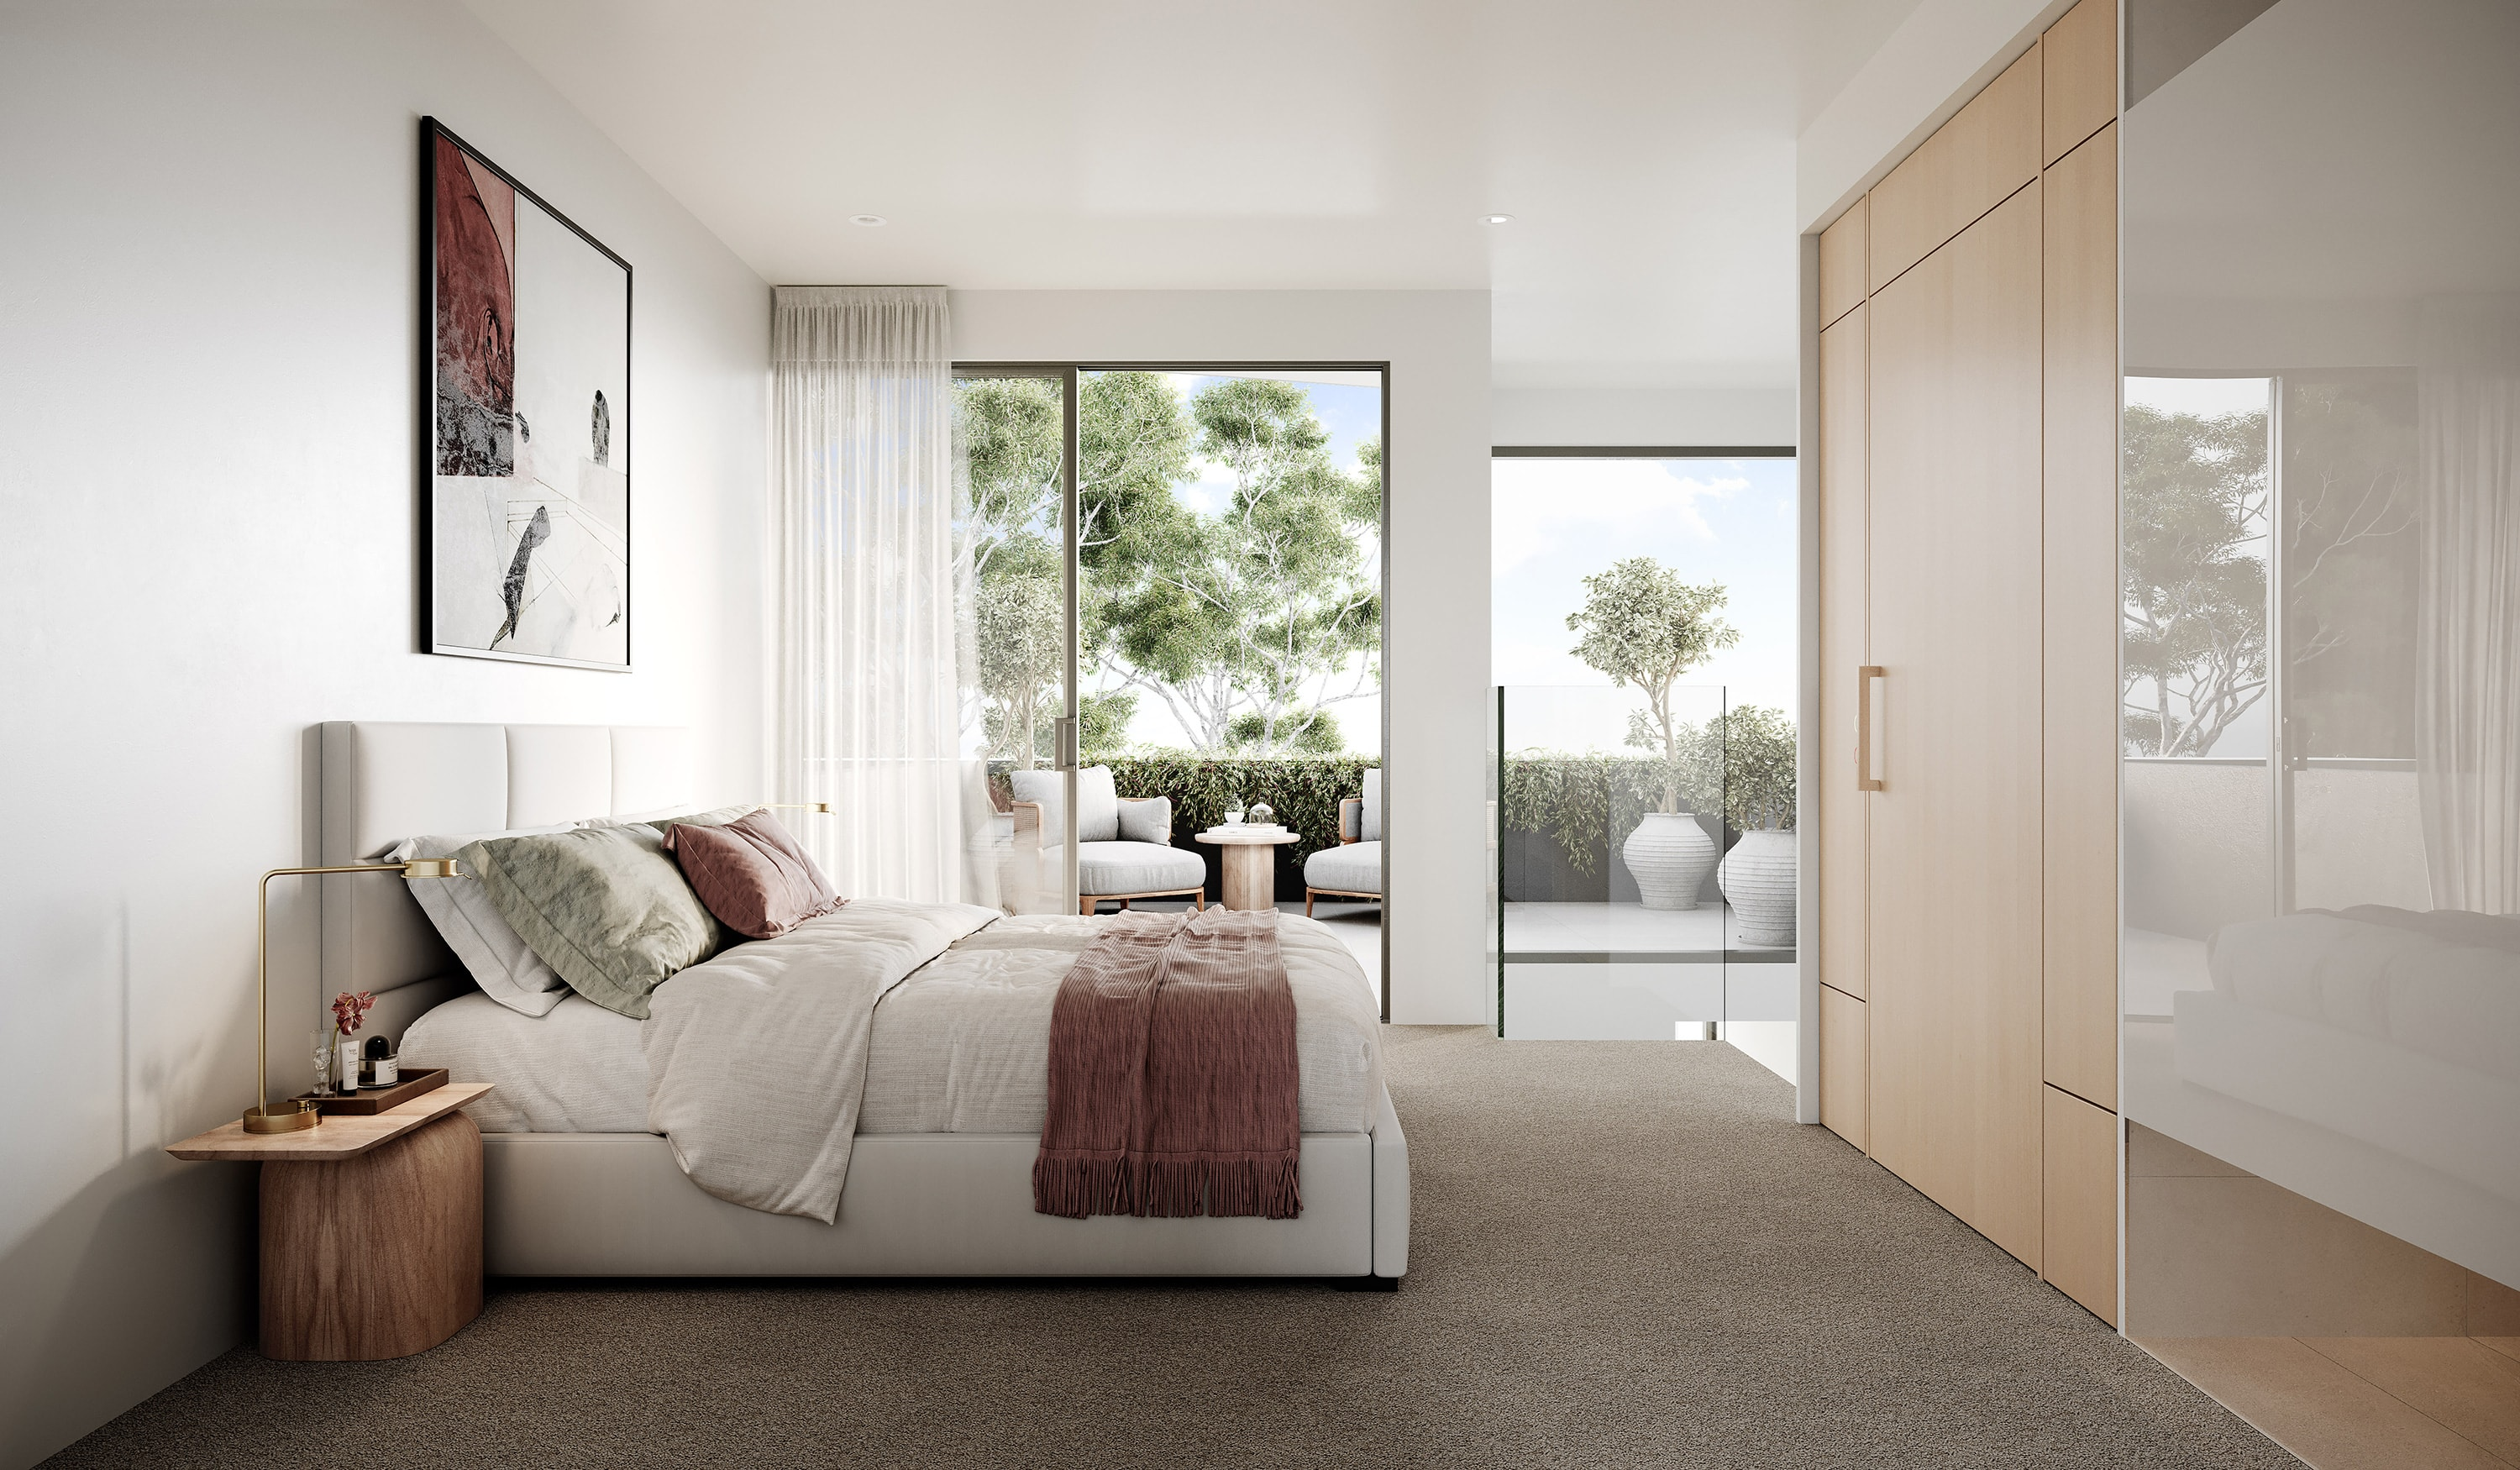 CGI of the master bedroom showing the flow out to the balcony and trees